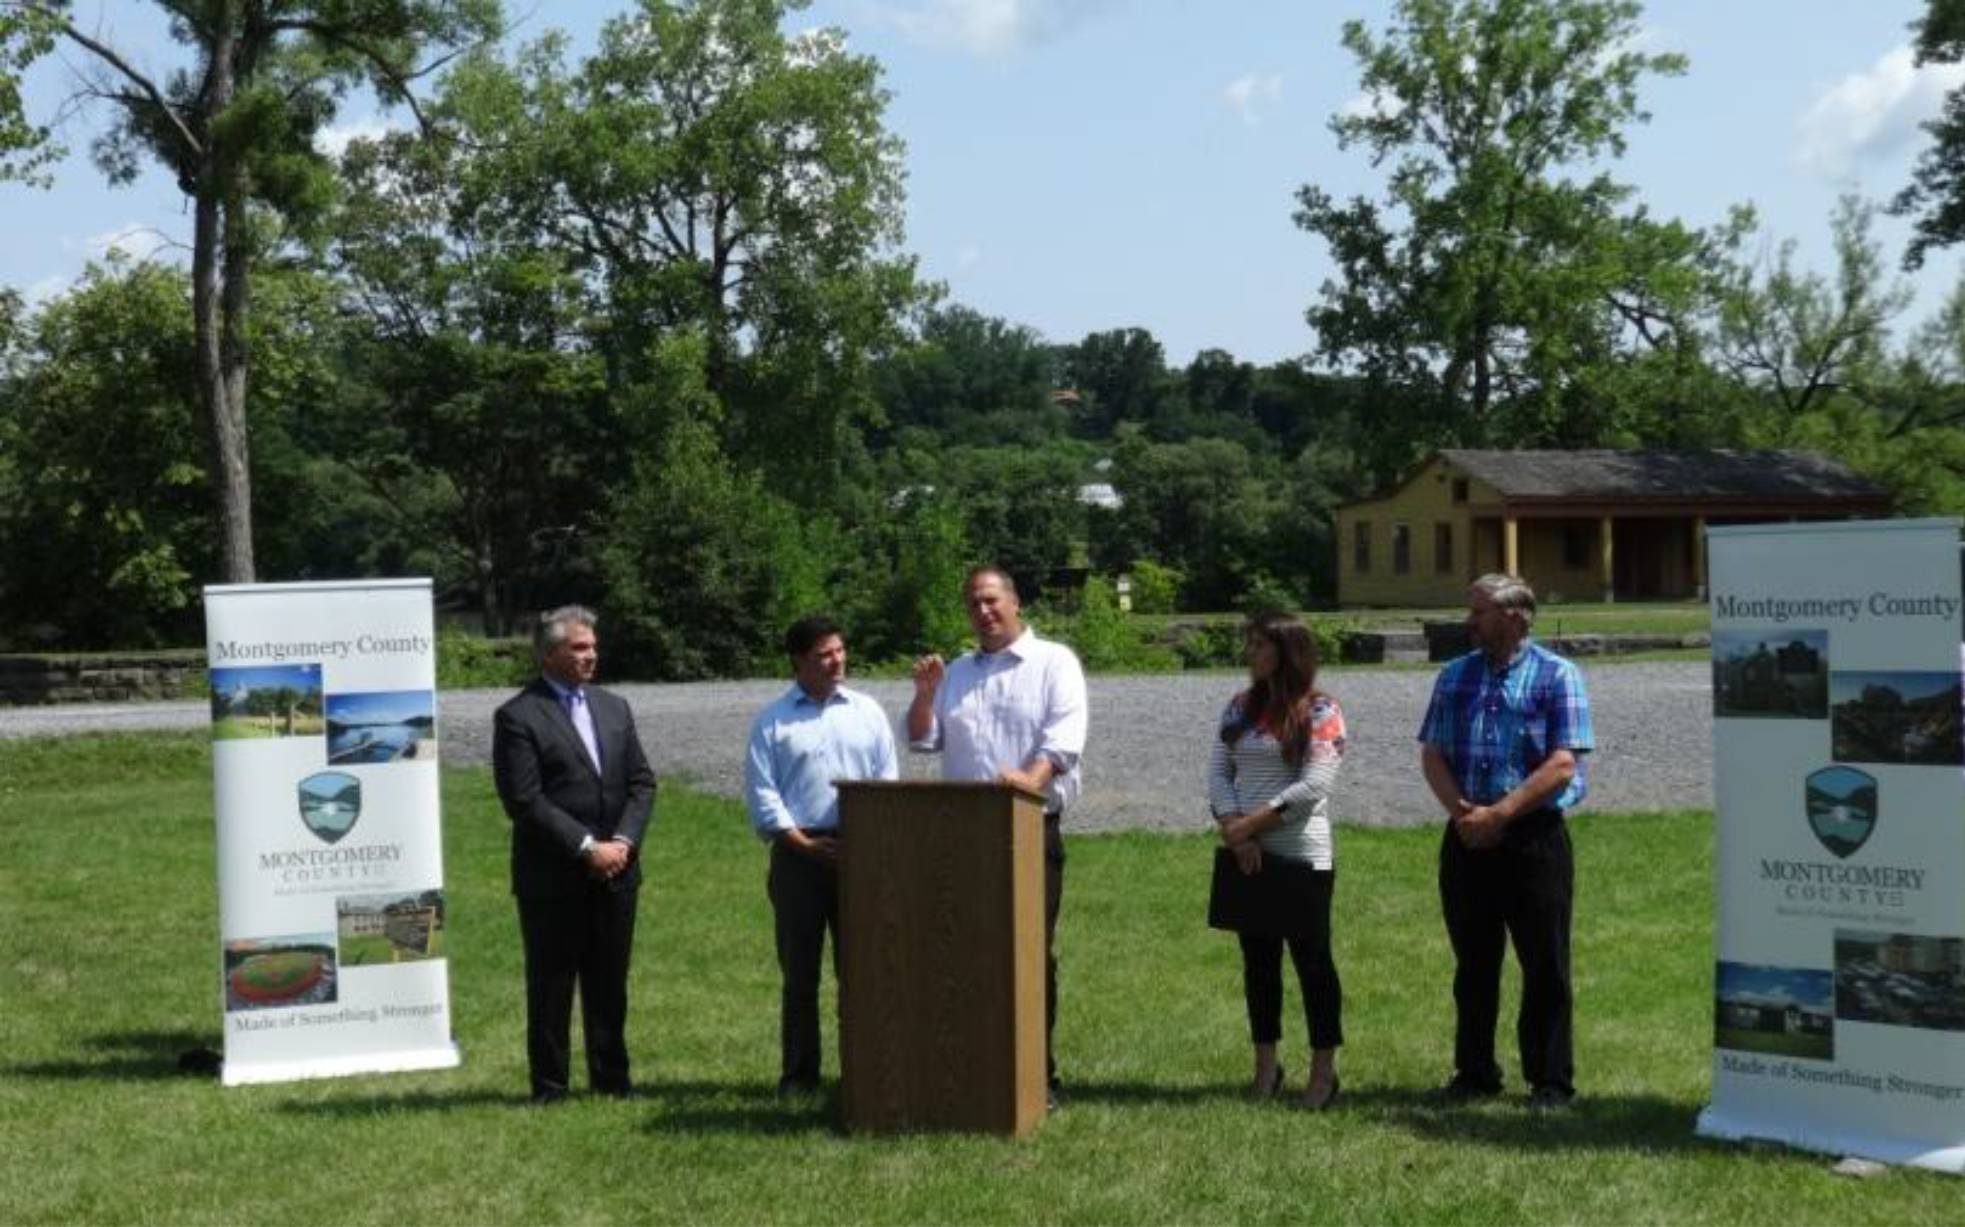 Montgomery County Executive Matthew L. Ossenfort addresses the media and the crowd at an announcement at Yankee Hill Lock.